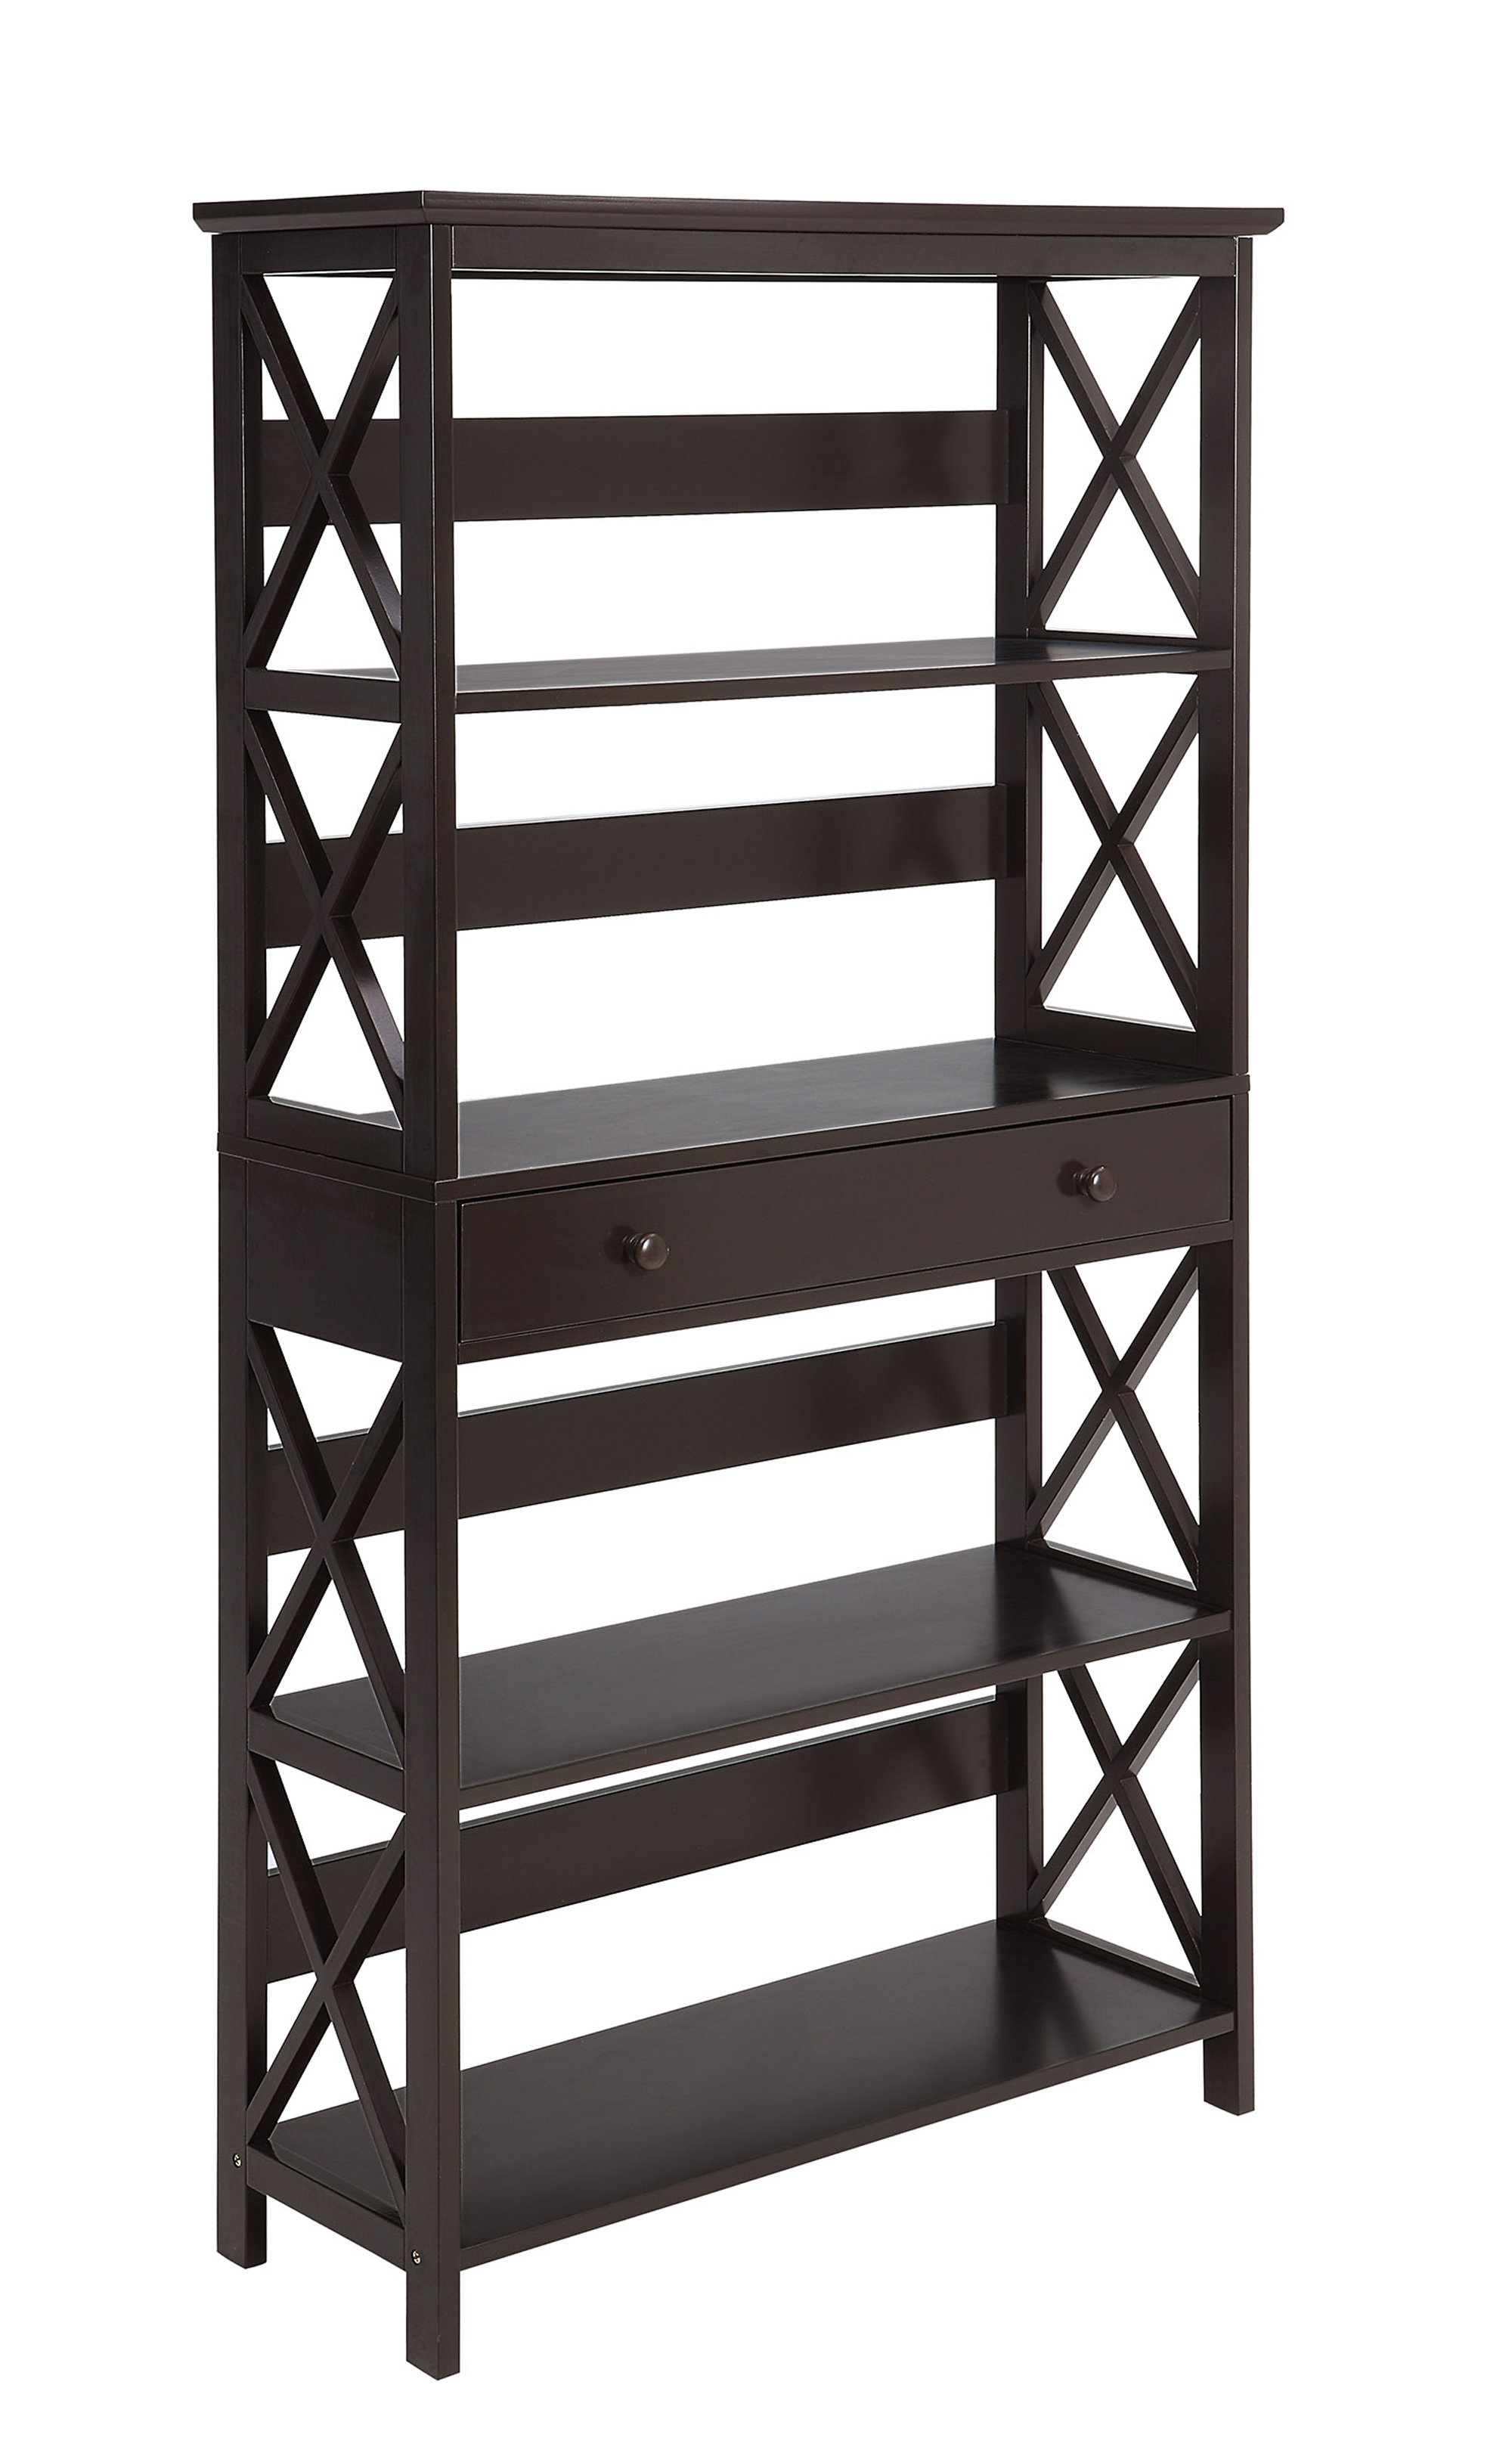 Beachcrest Home Gracelynn 5 Tier Etagere Bookcase Intended For Fashionable Gracelynn 5 Tier Etagere Bookcases (View 1 of 20)